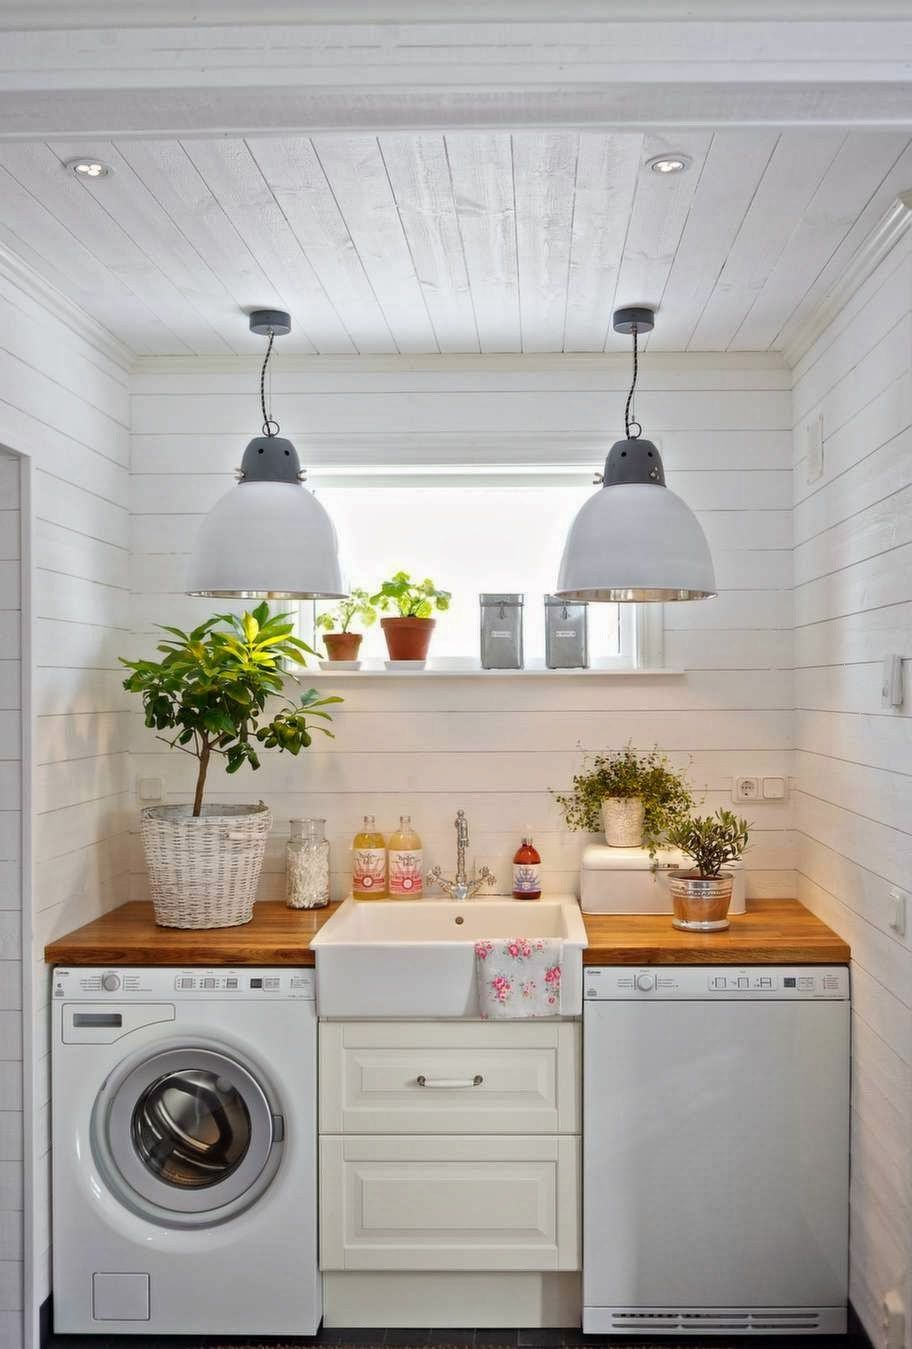 Inspiring small laundry room design ideas small laundry rooms